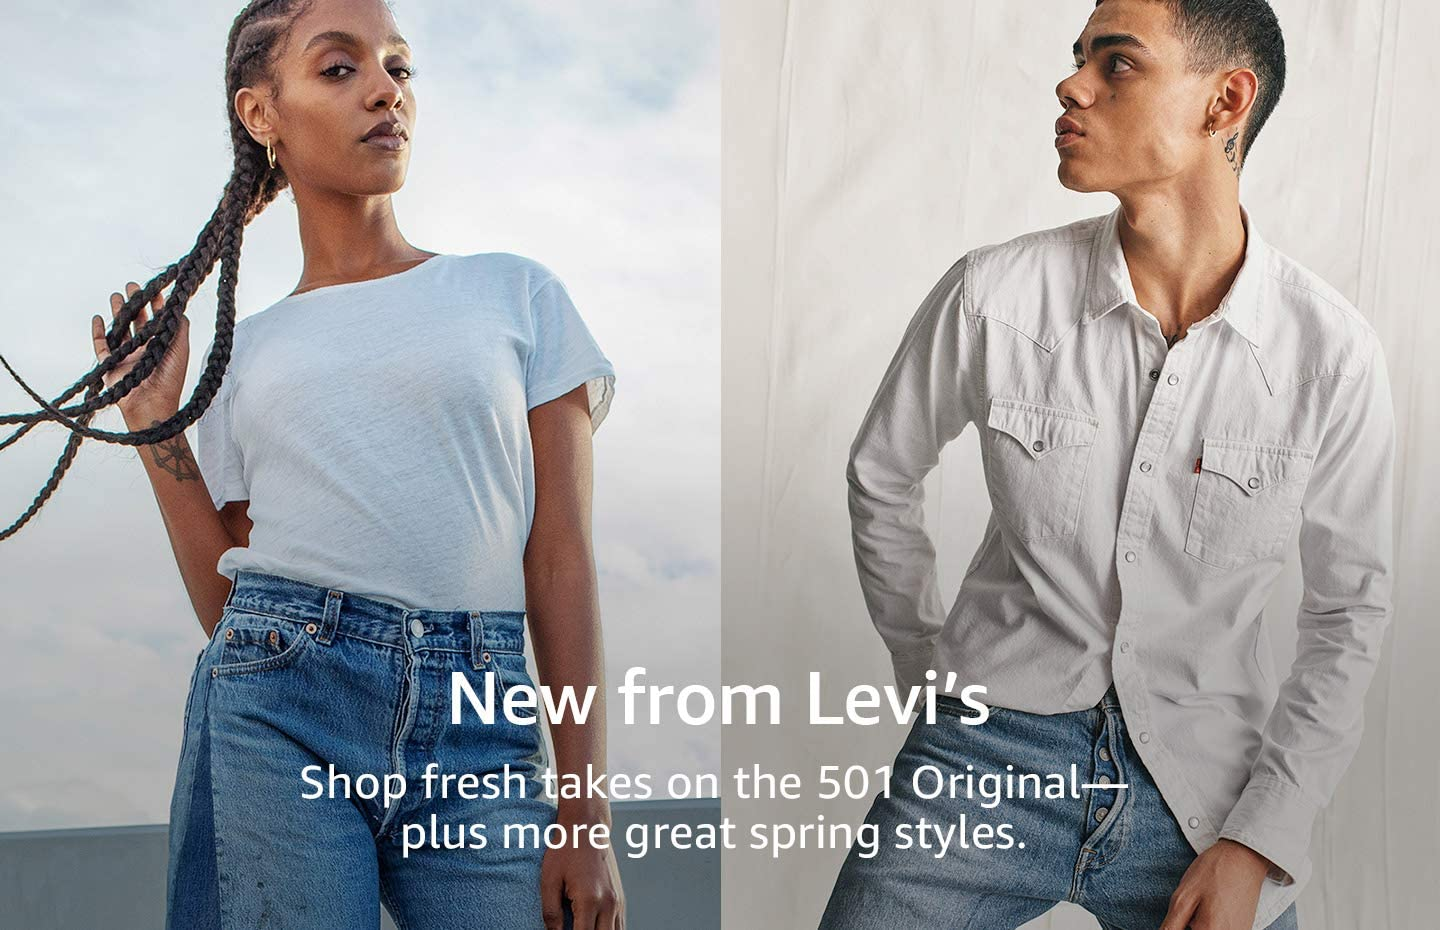 New spring styles from Levi's